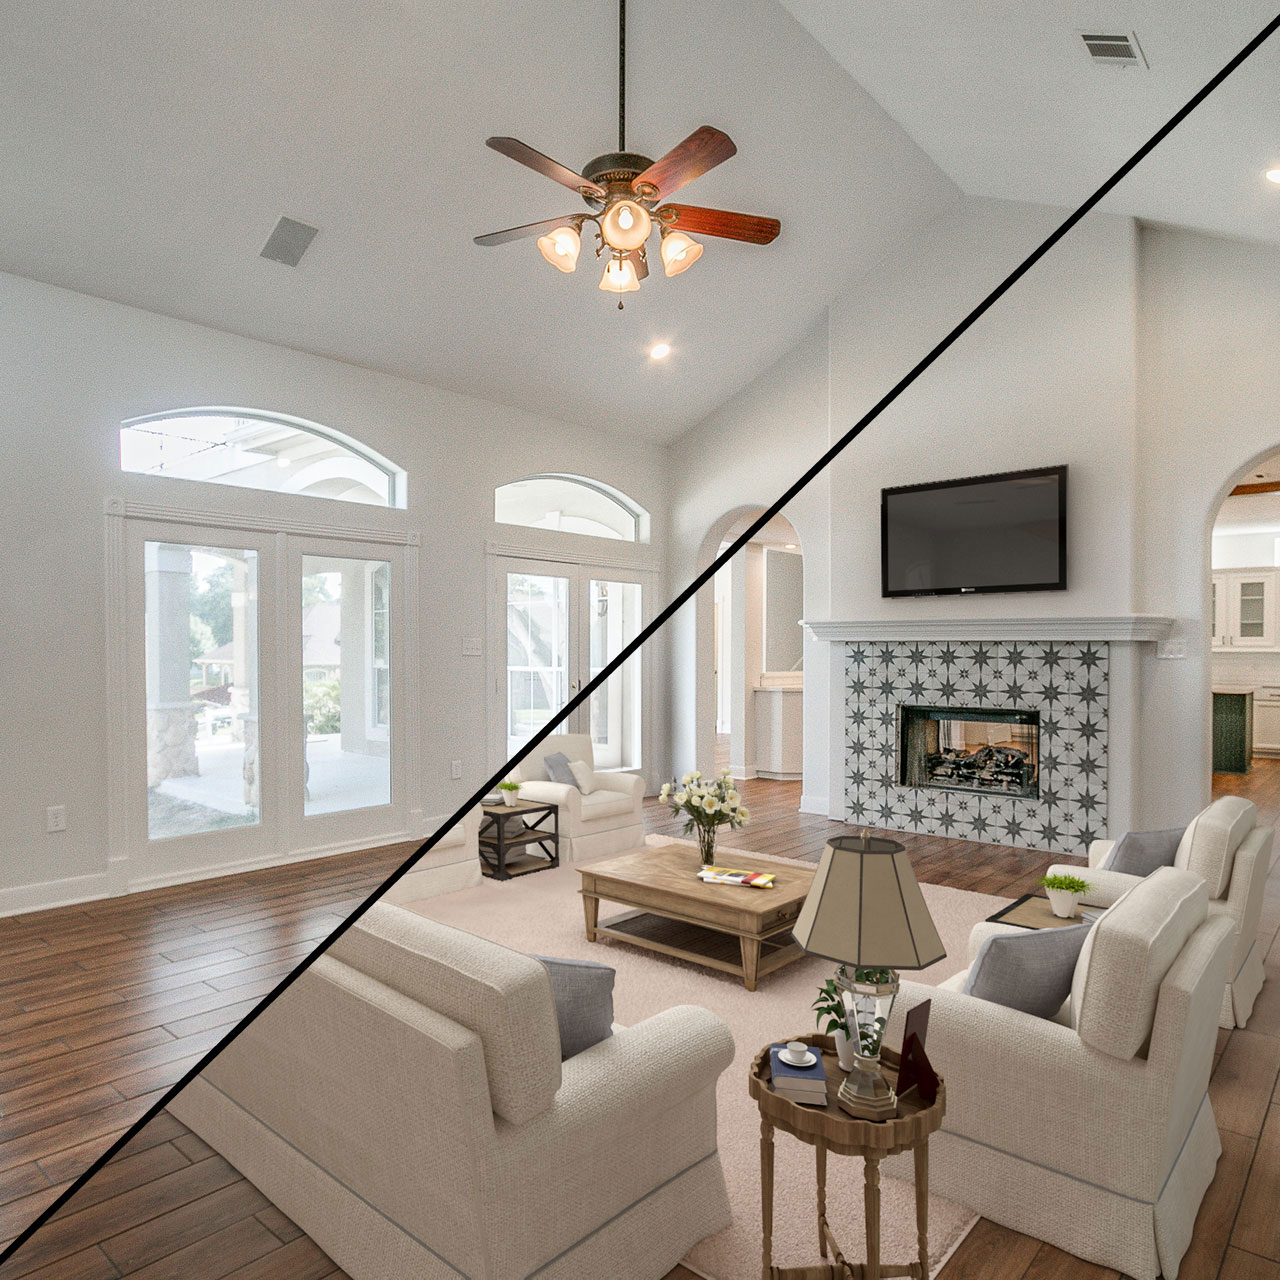 Home Staging Gallery: Premier Realty Services